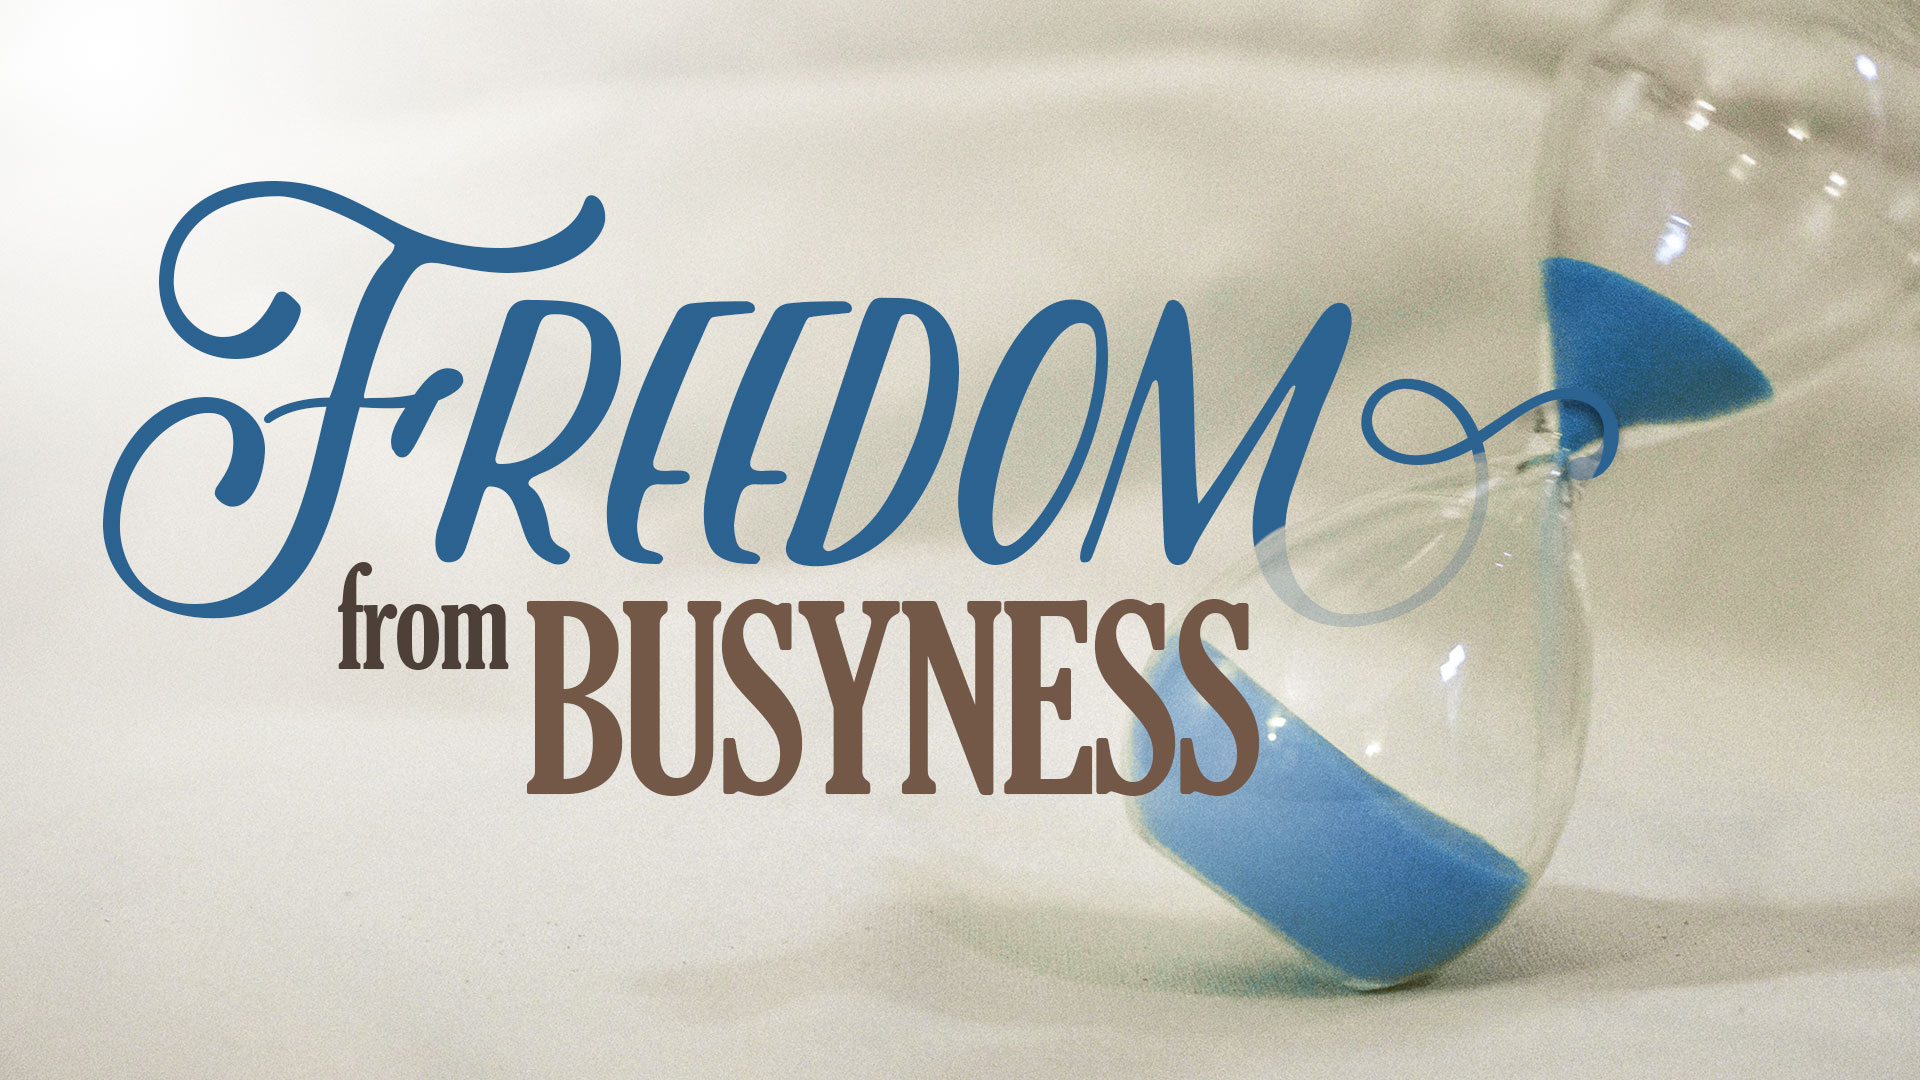 Freedom from Busyness